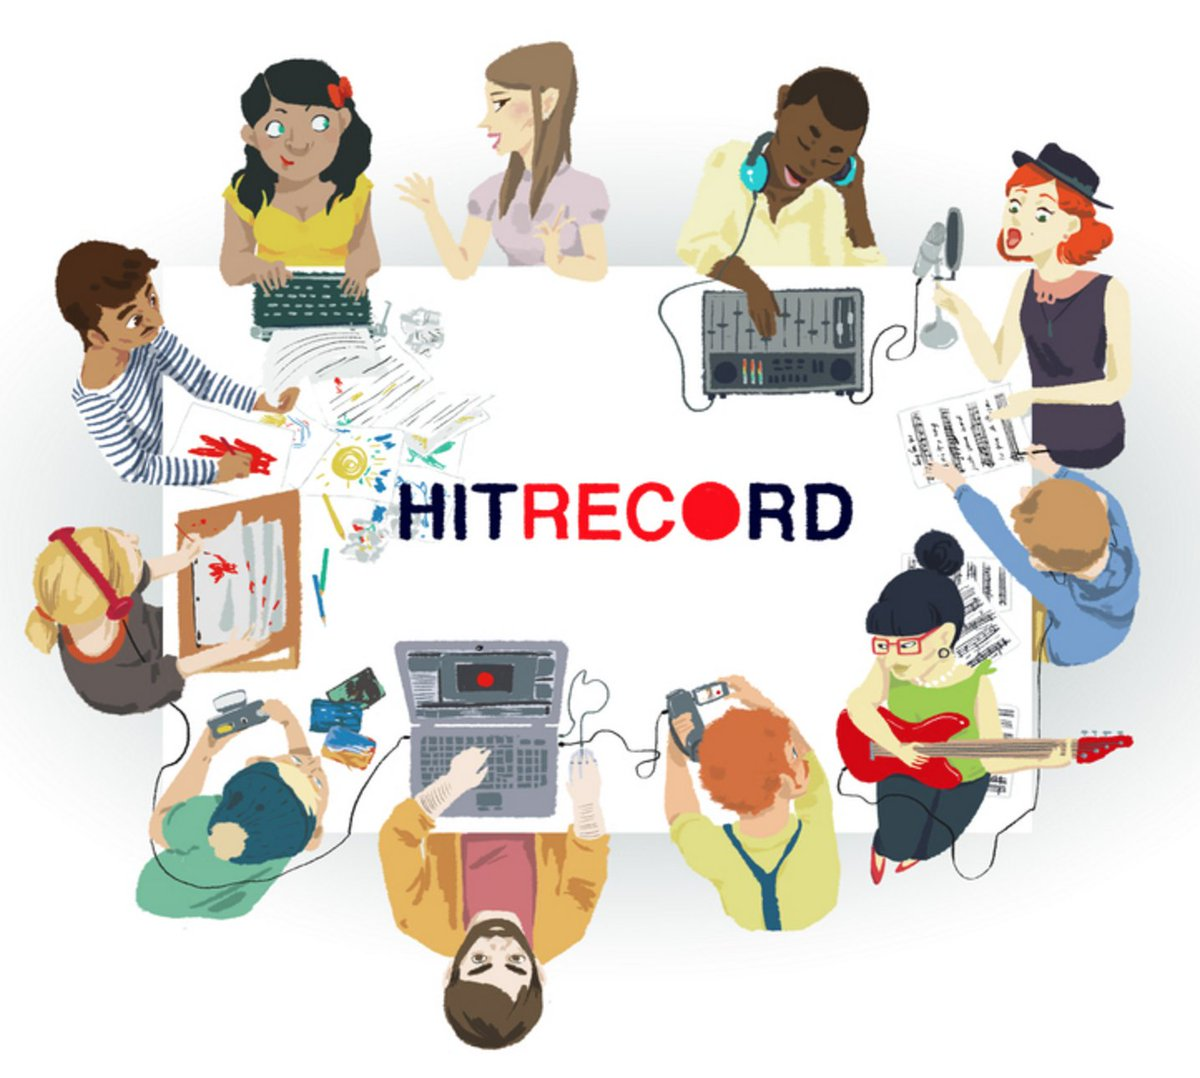 I think we'll make better stuff on @hitRECord the better that we know each other.. https://t.co/4euNoioLIn https://t.co/vQW3Hf2UXe